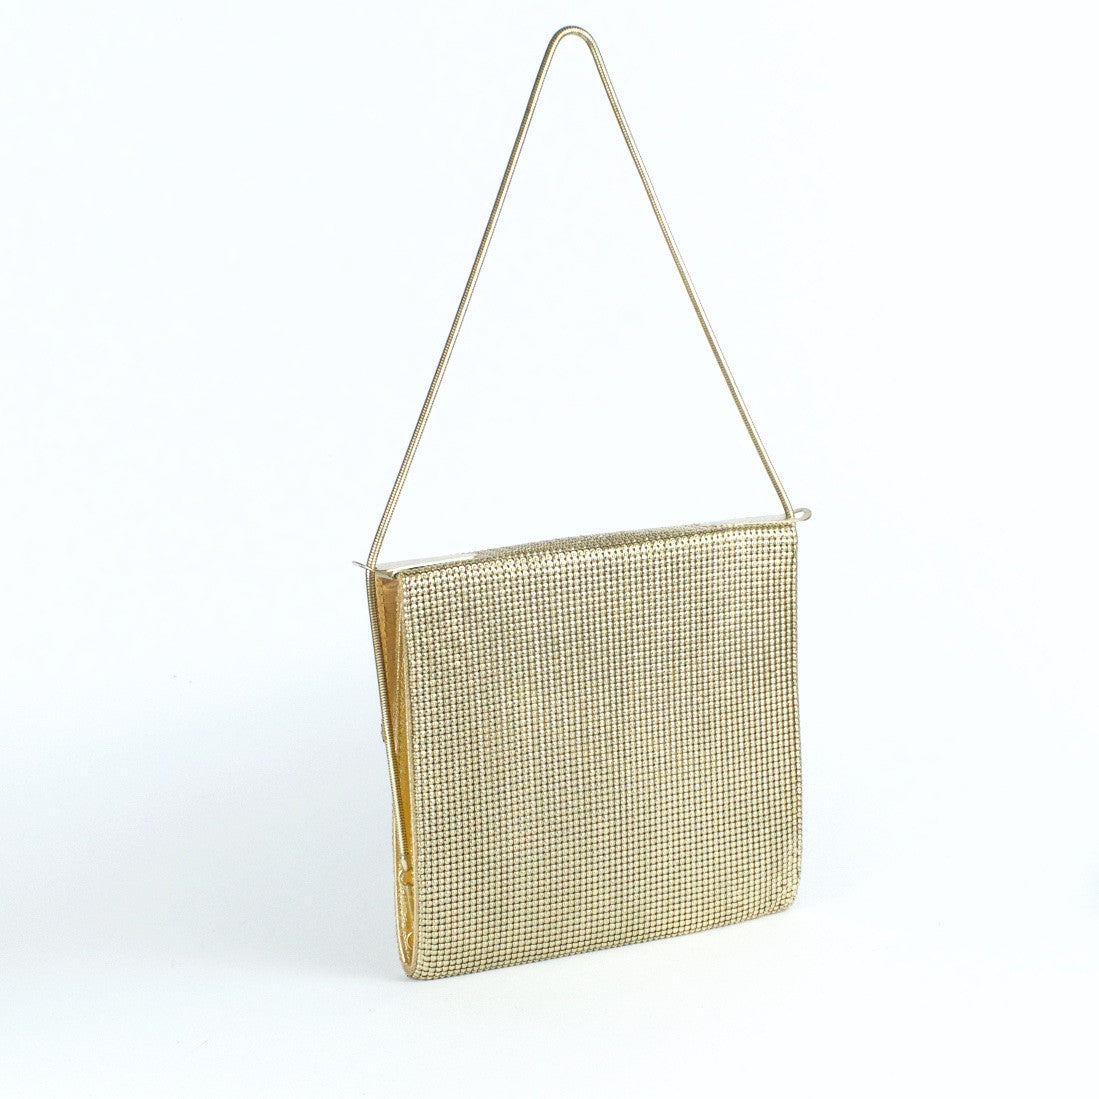 Vintage gold metal mesh evening bag by Glomesh, view back